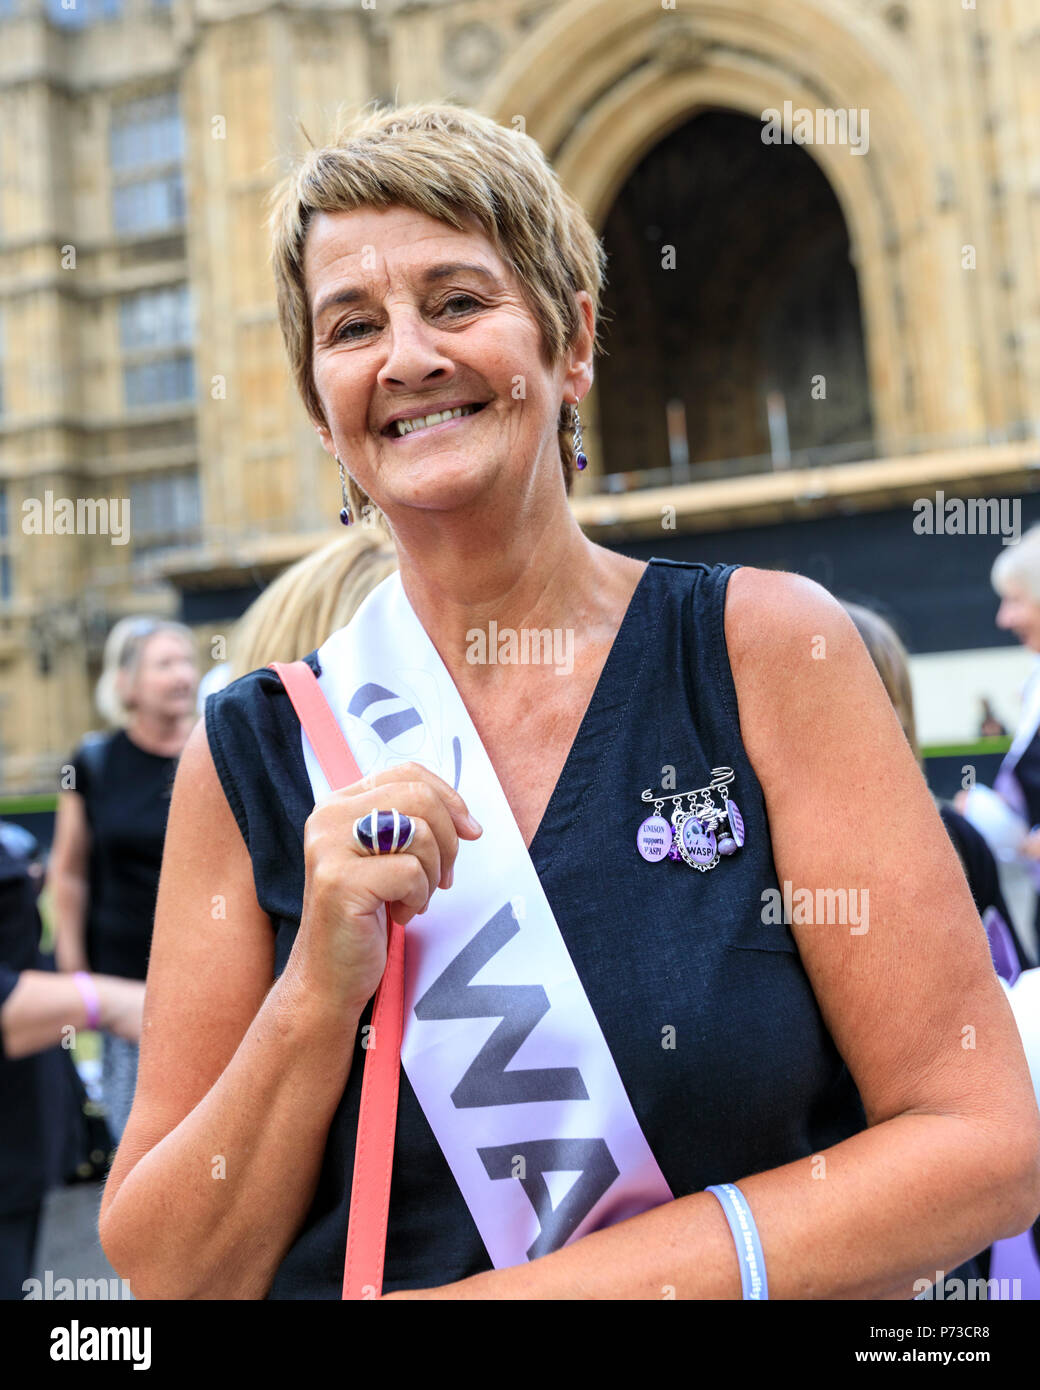 Westminster, London, 4th July 2018. Co-founder of WASPI, Anne Keen. WASPI, Women Against State Pension Inequality have organised a protest highlighting the issues around 3.8m women, mostly born in the 1950, will not receive their state pension aged 60. The Campaign aims to reach a transitional agreement for these women. Credit: Imageplotter News and Sports/Alamy Live News - Stock Image